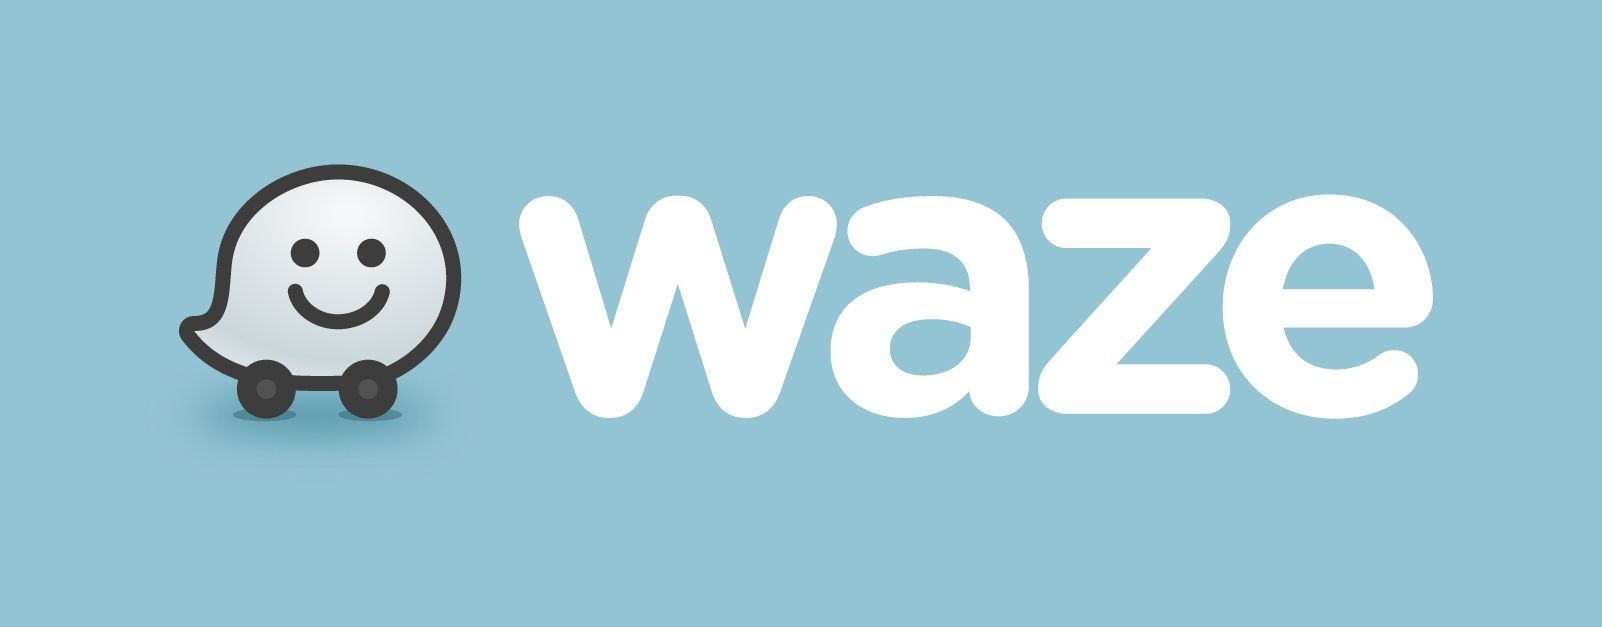 Waze gets an update, but no 3D Touch or Apple Watch love